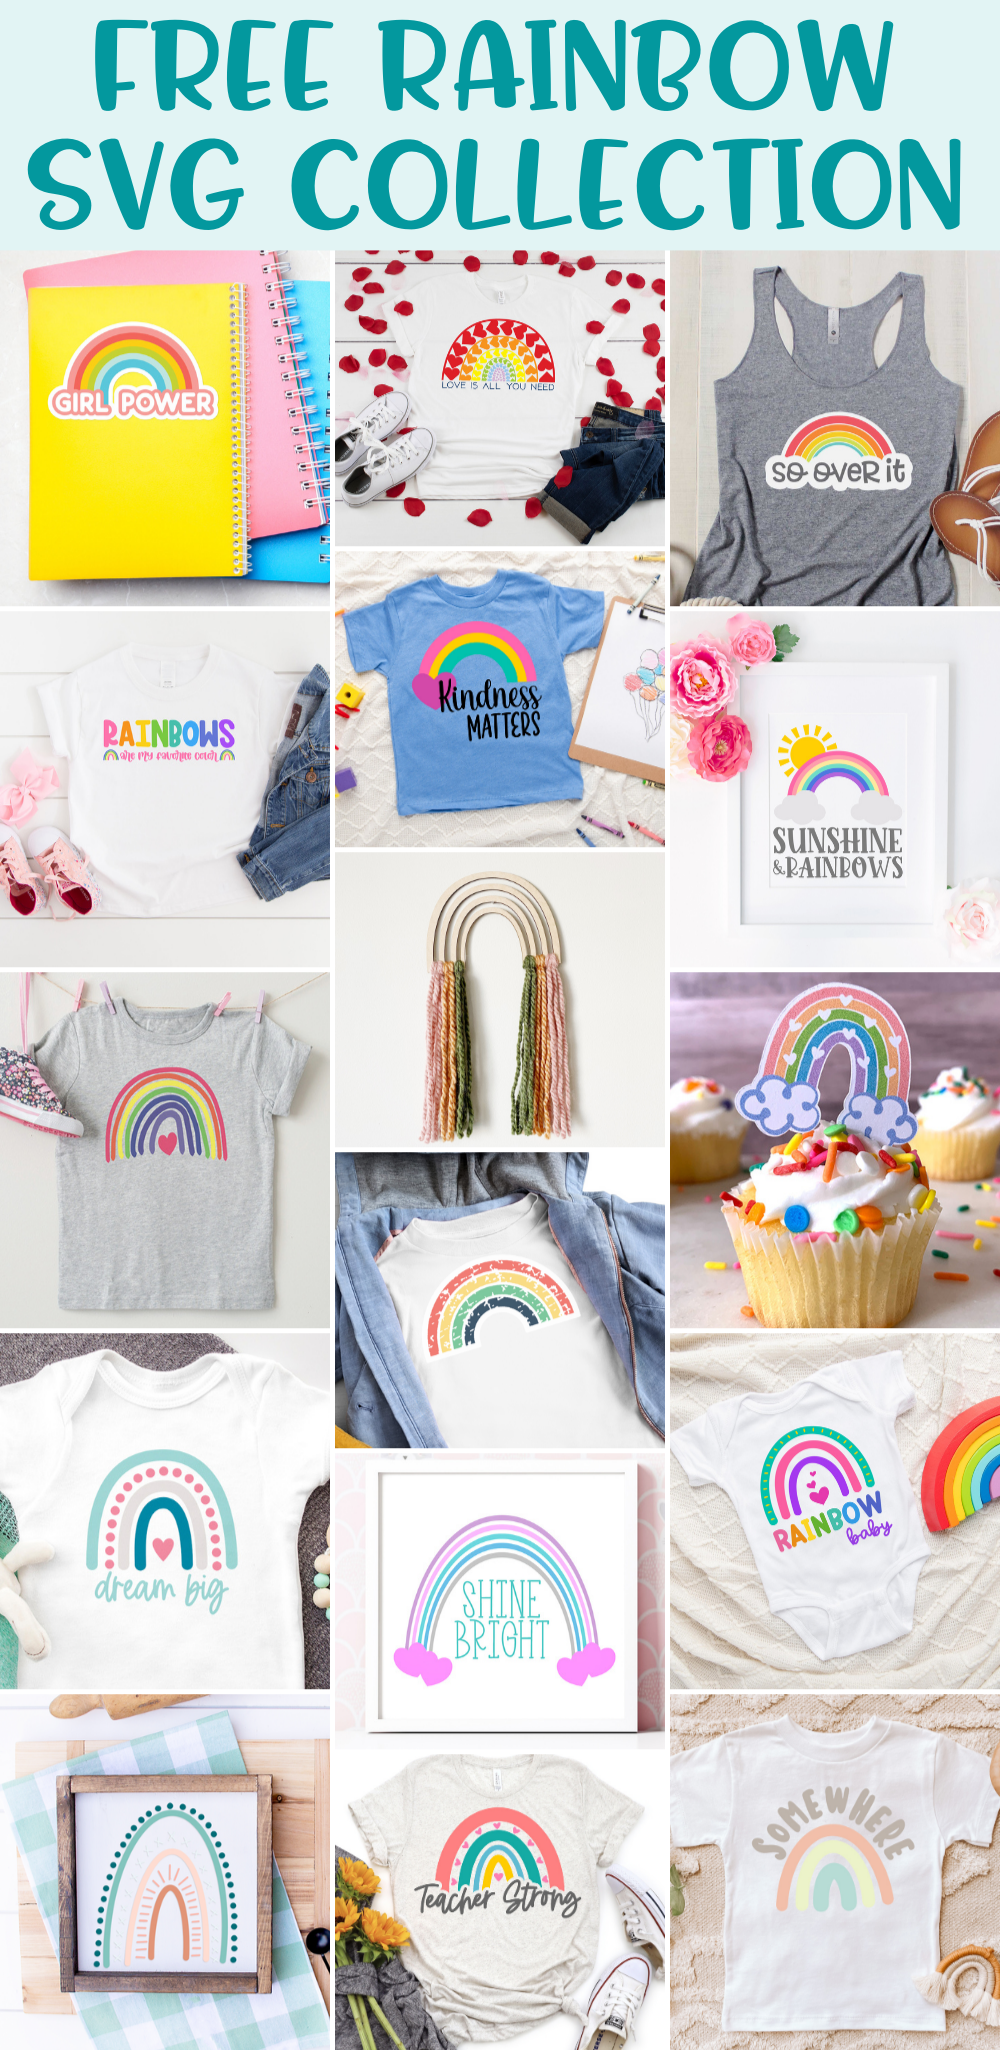 Free Rainbow SVG Collection